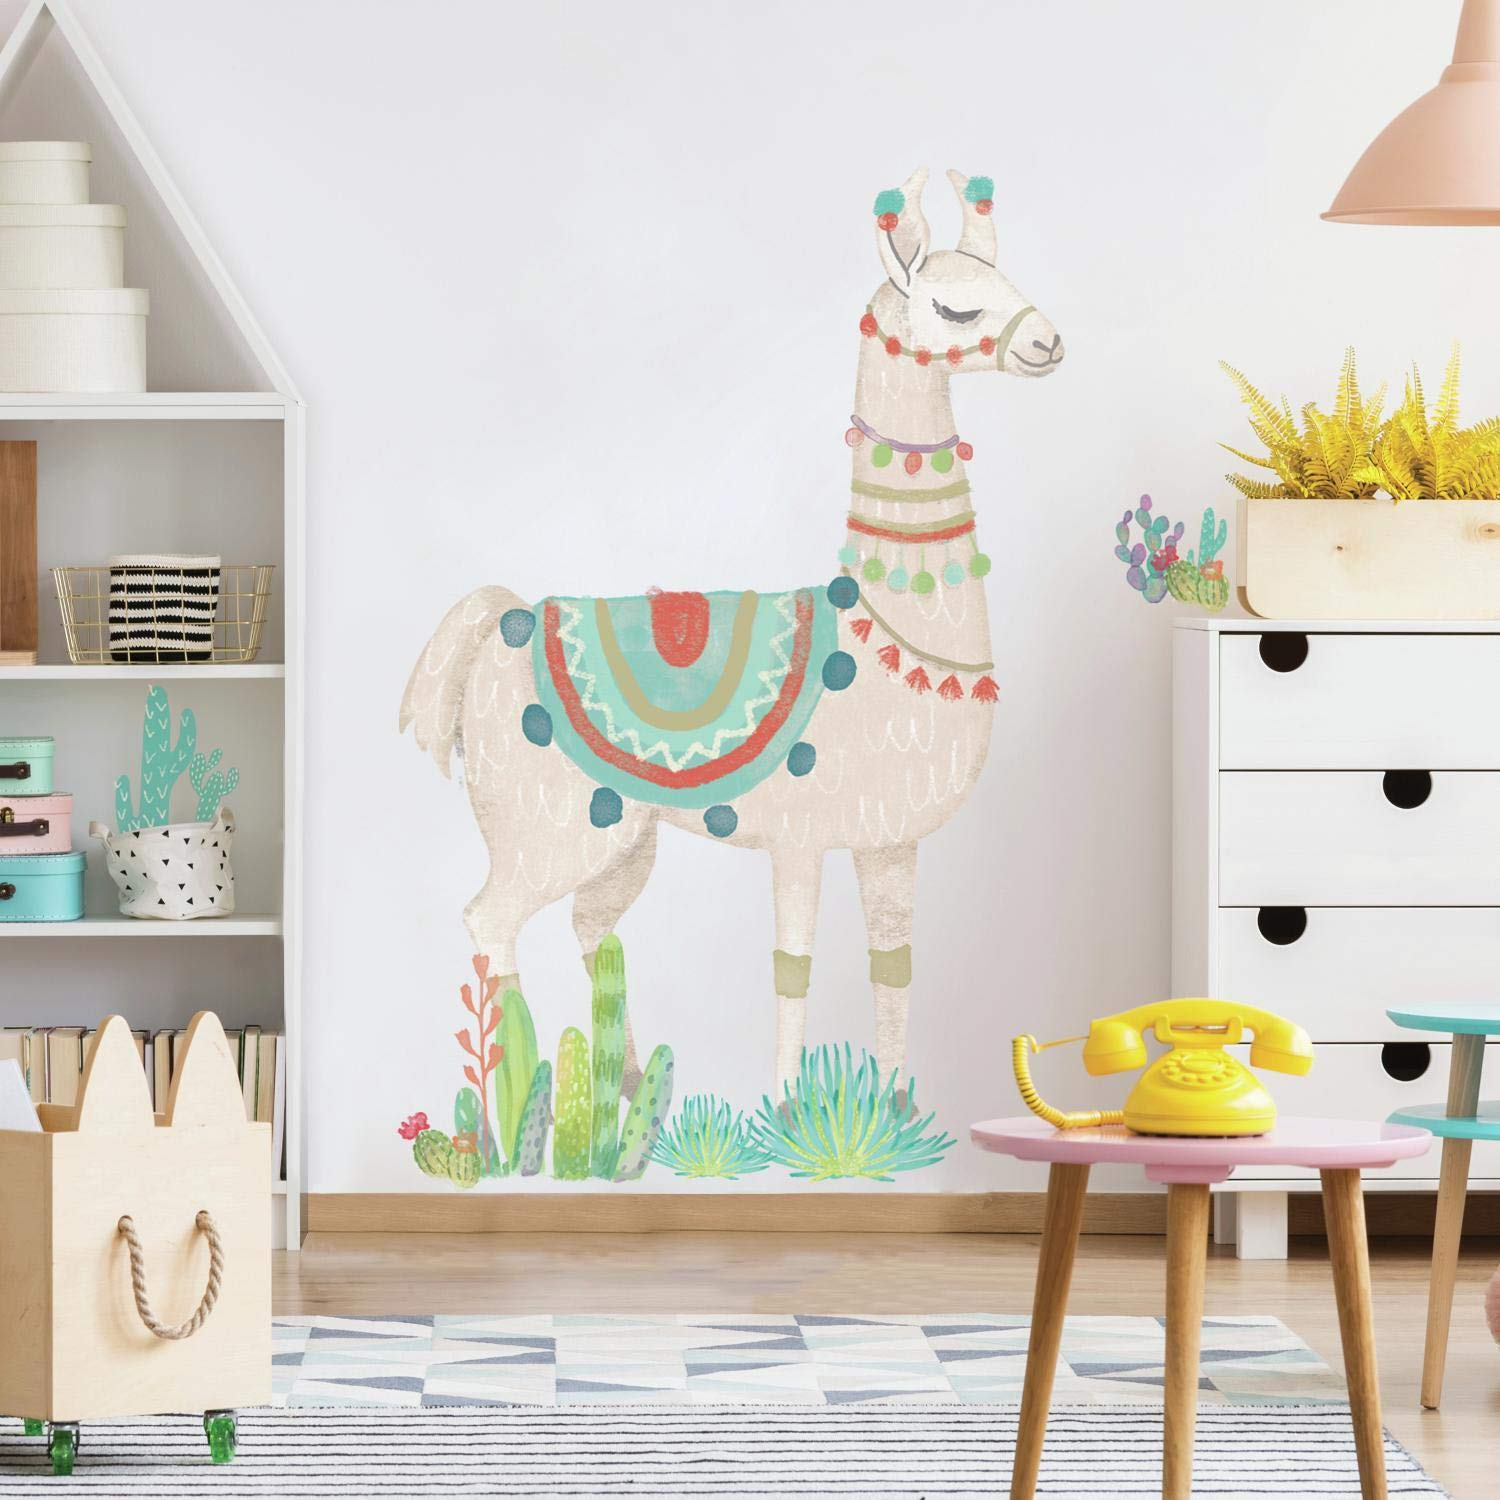 RoomMates Watercolor Llama Peel And Stick Giant Wall Decals, tan, green, blue, 1 Sheet 36.5 inches x 17.25 inches / 1 Sheet at 9 inches x 36.5 inches - RMK3839GM